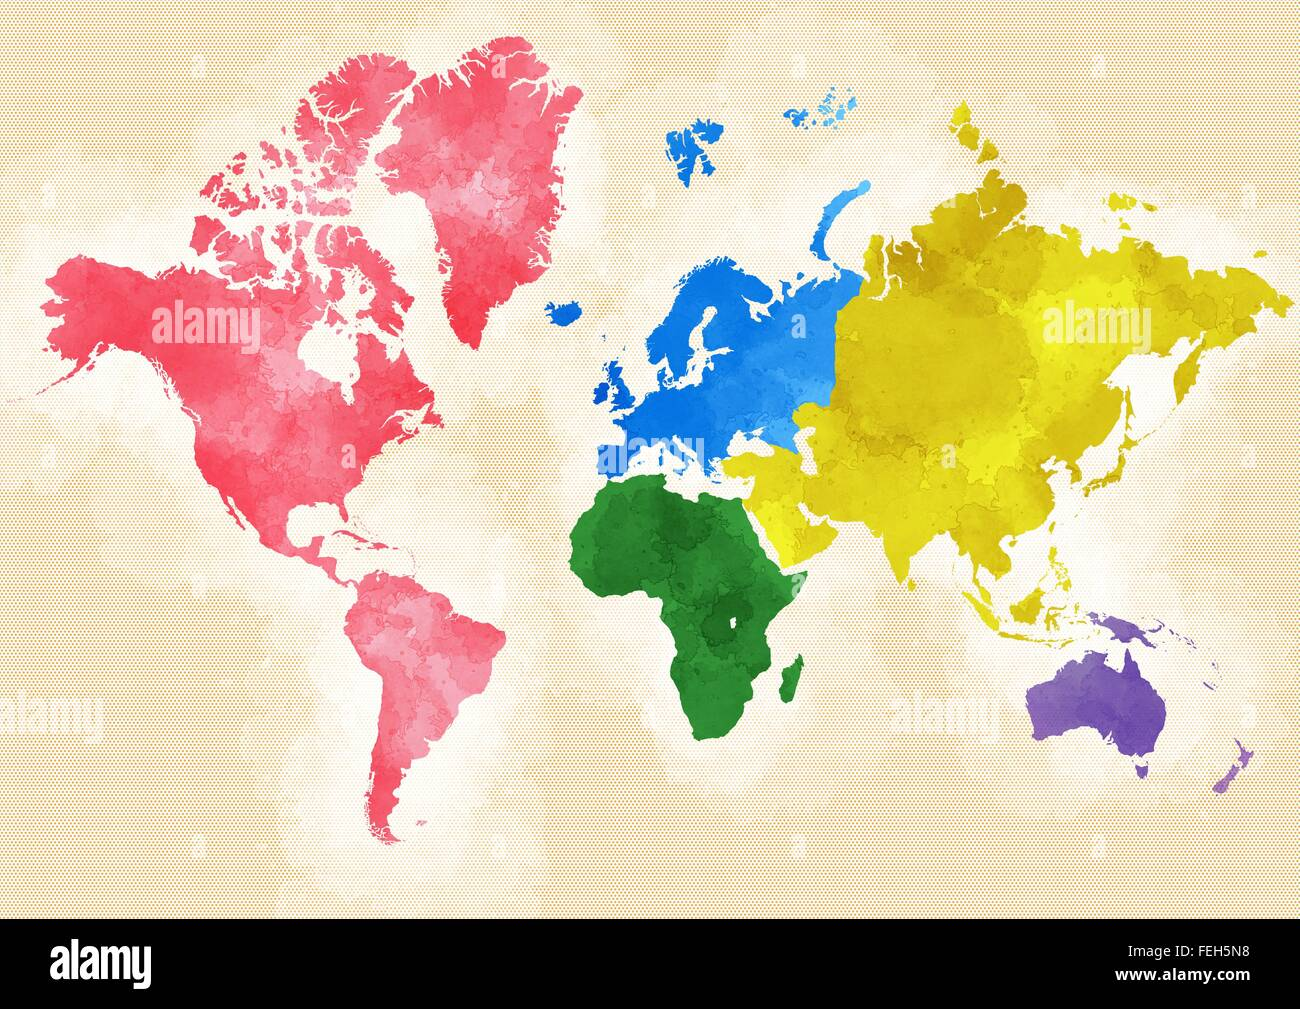 World map designed illustrated brushstrokes division by continents world map designed illustrated brushstrokes division by continents gumiabroncs Image collections